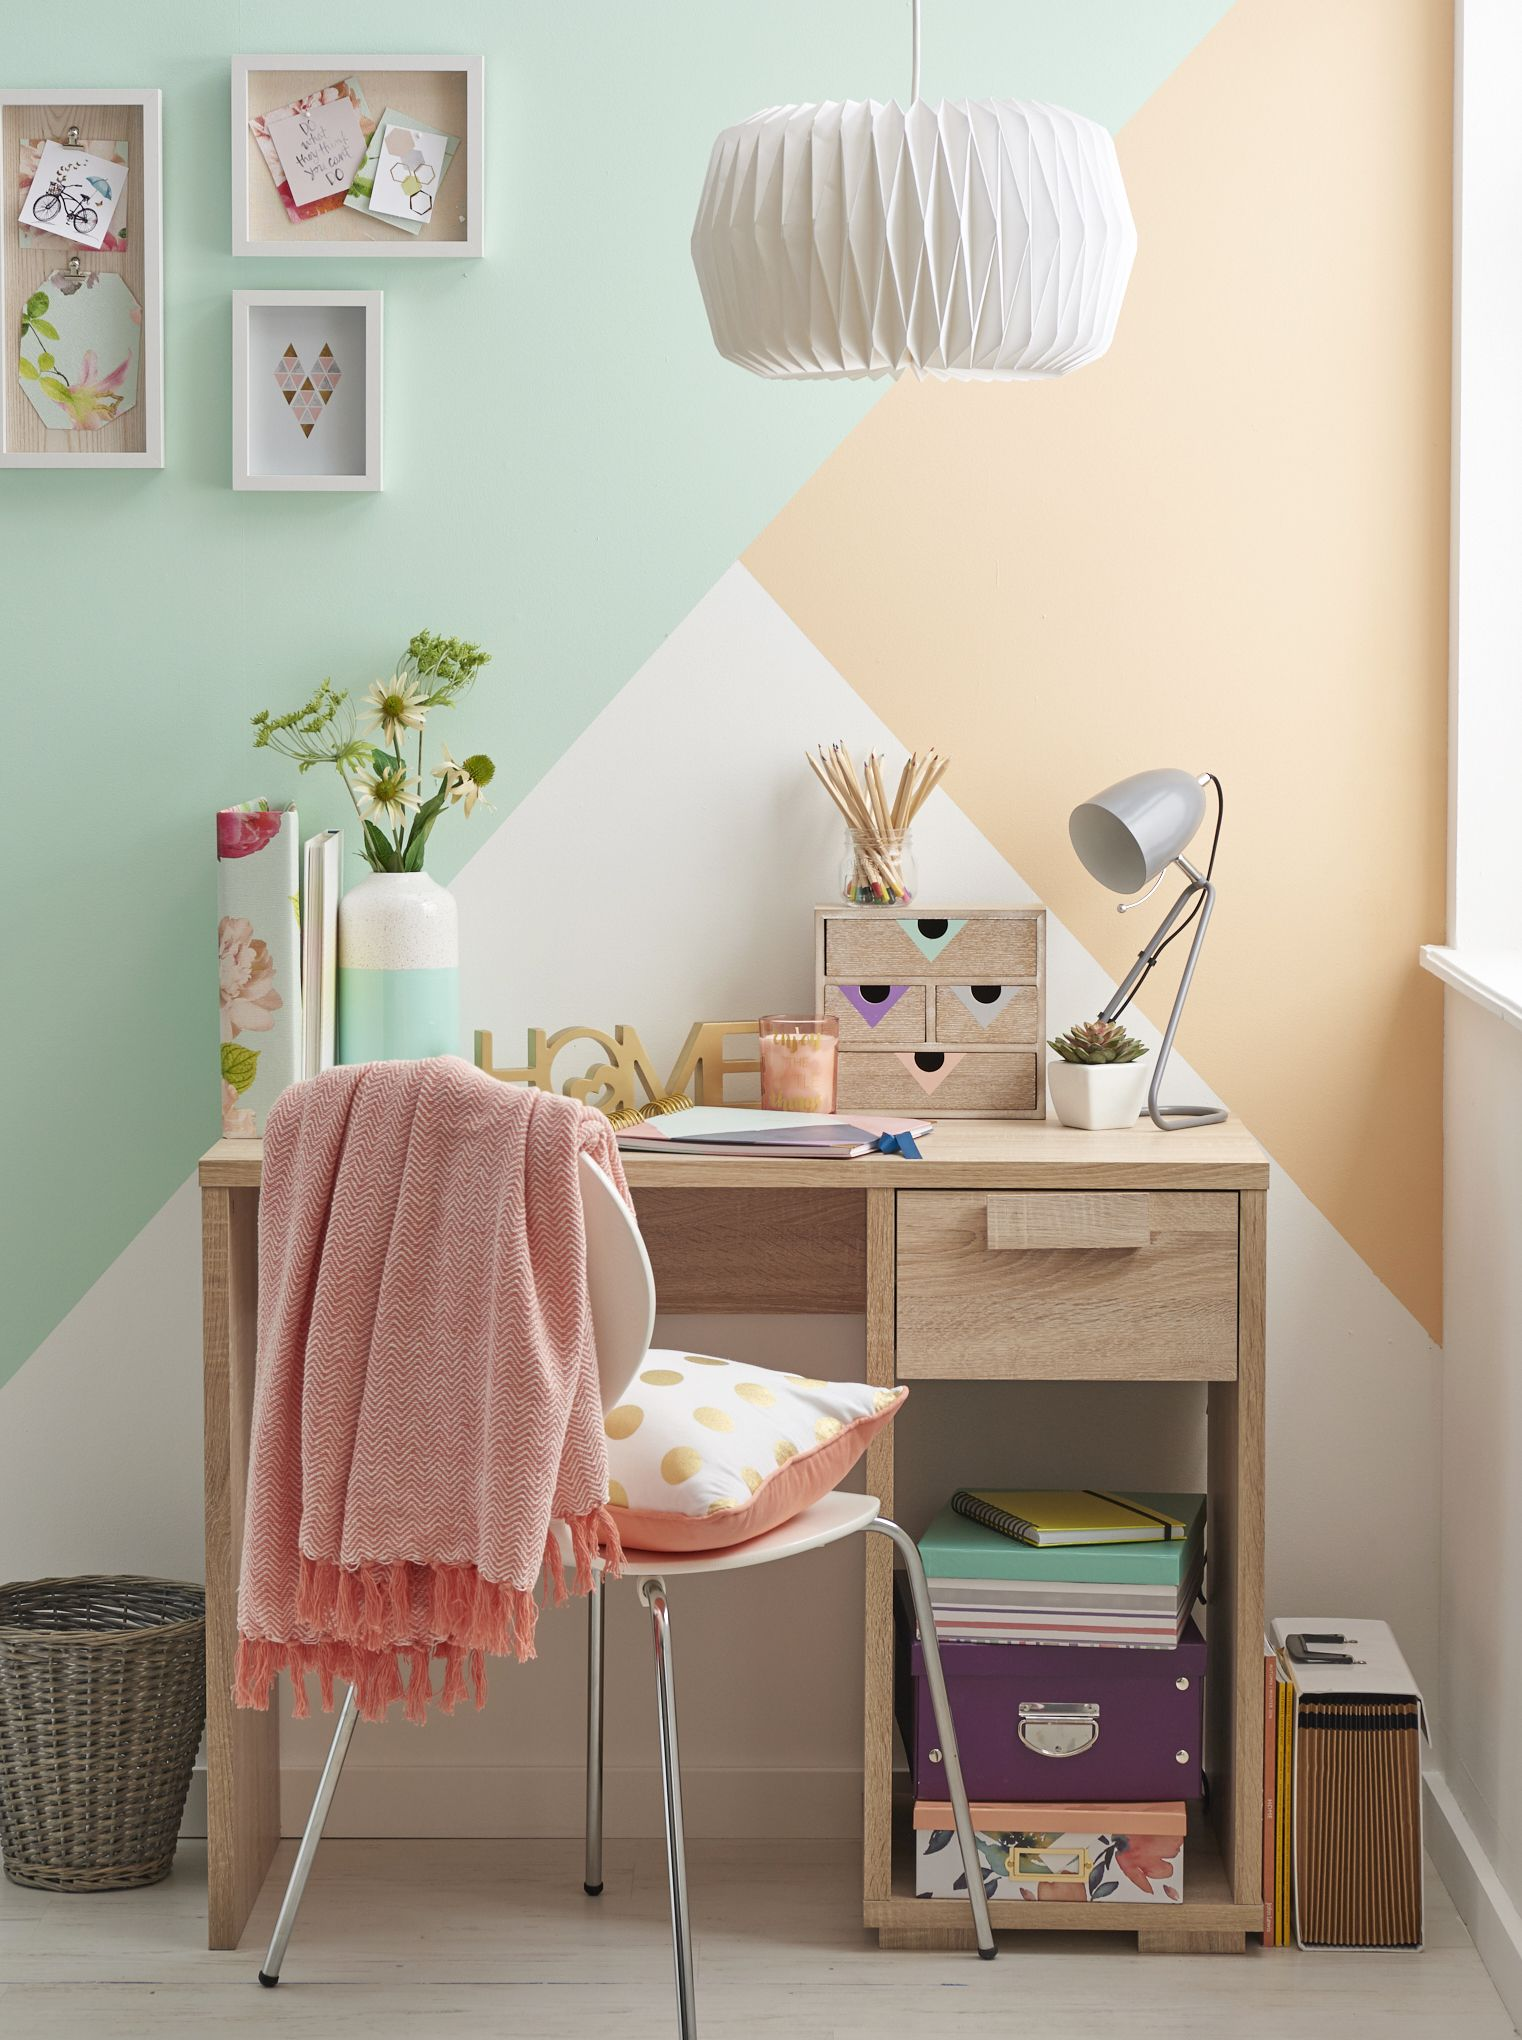 #Colour-blocking is a great way to add interest to a #child's #room, without splashing out on expensive wallpaper designs. For a calming look, choose soft, toning shades; for a bolder scheme, pick out primaries or shocking contrasts. If you're looking for more inspiring #paint #ideas for #kids' #bedrooms, take a look at our feature. #childroom